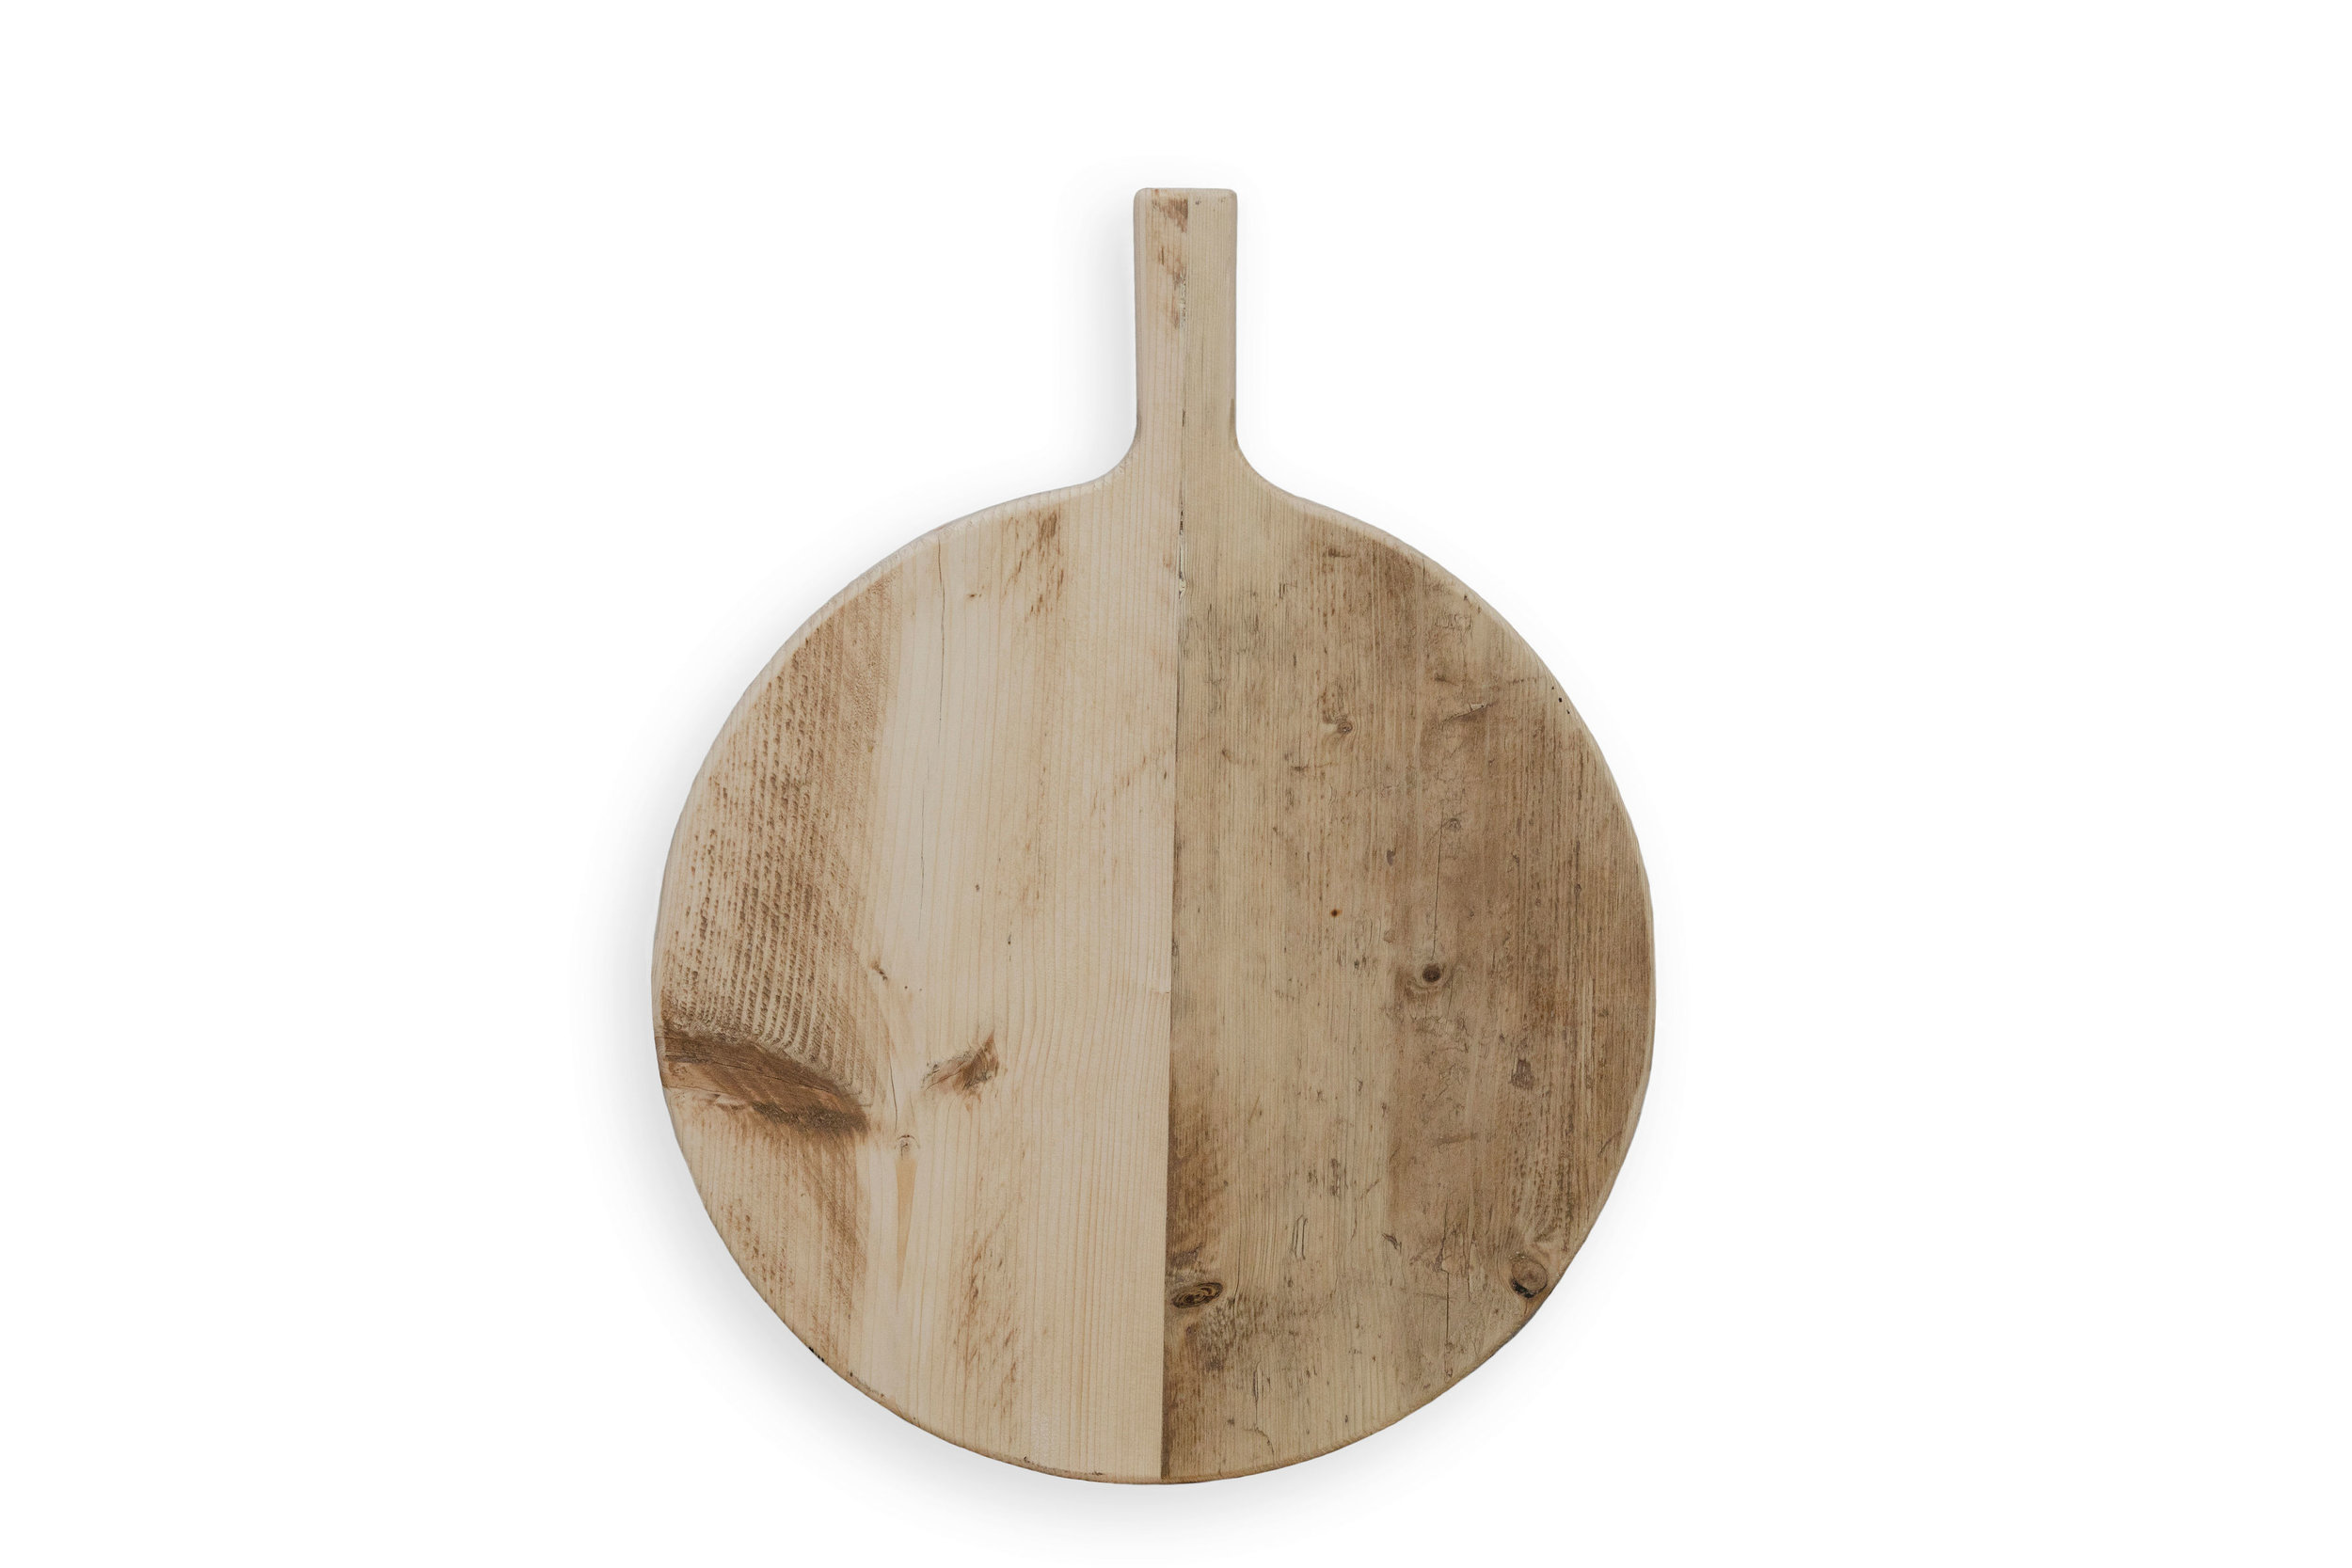 Handmade serving board from Vincent Trading